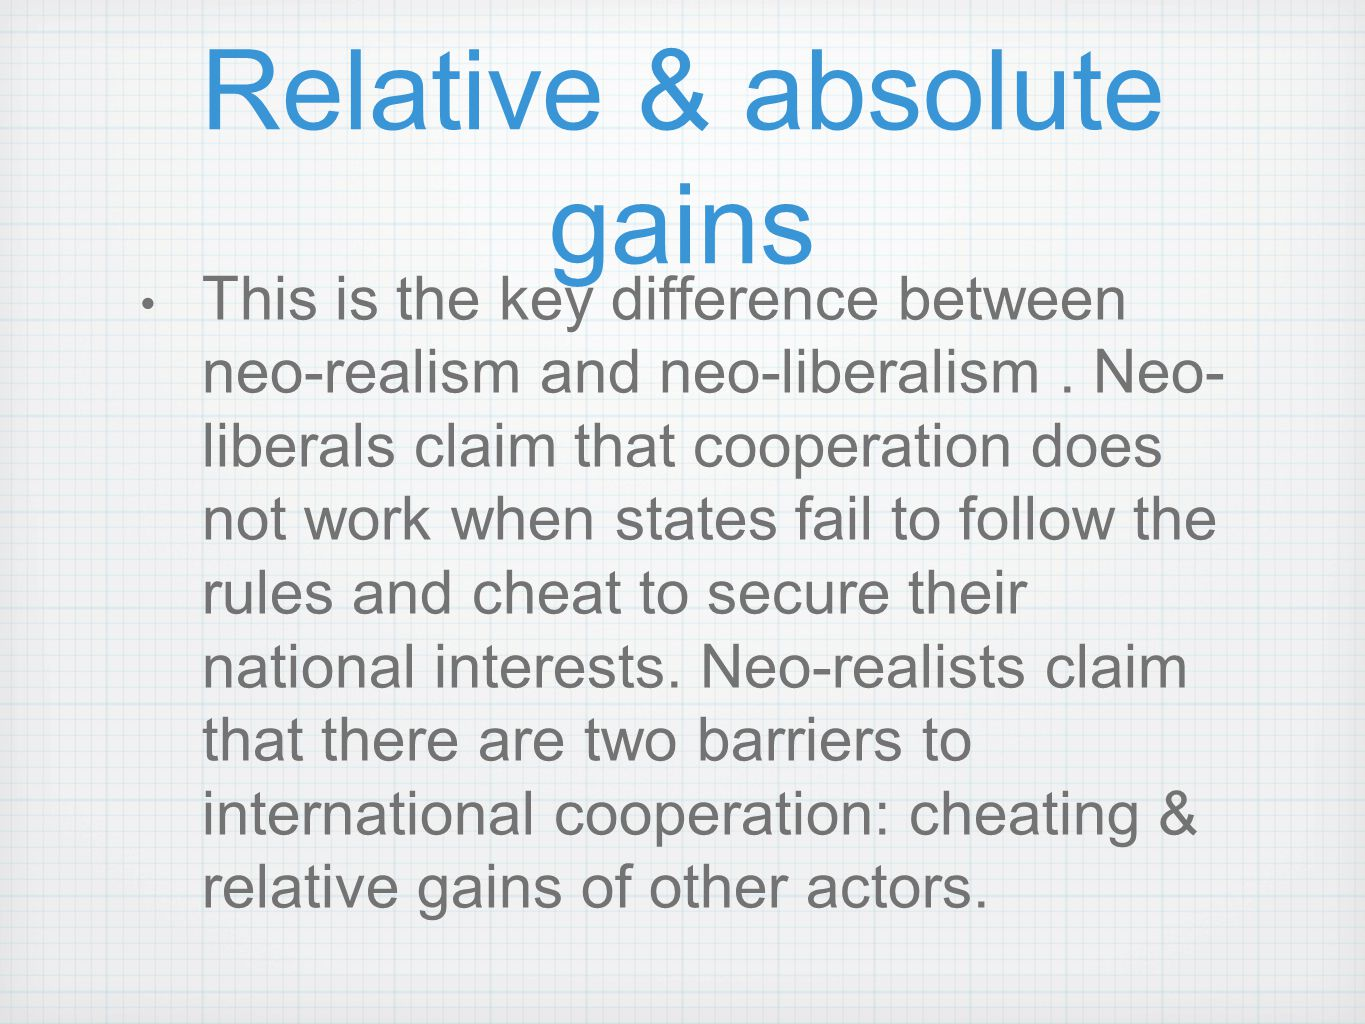 Relative & absolute gains